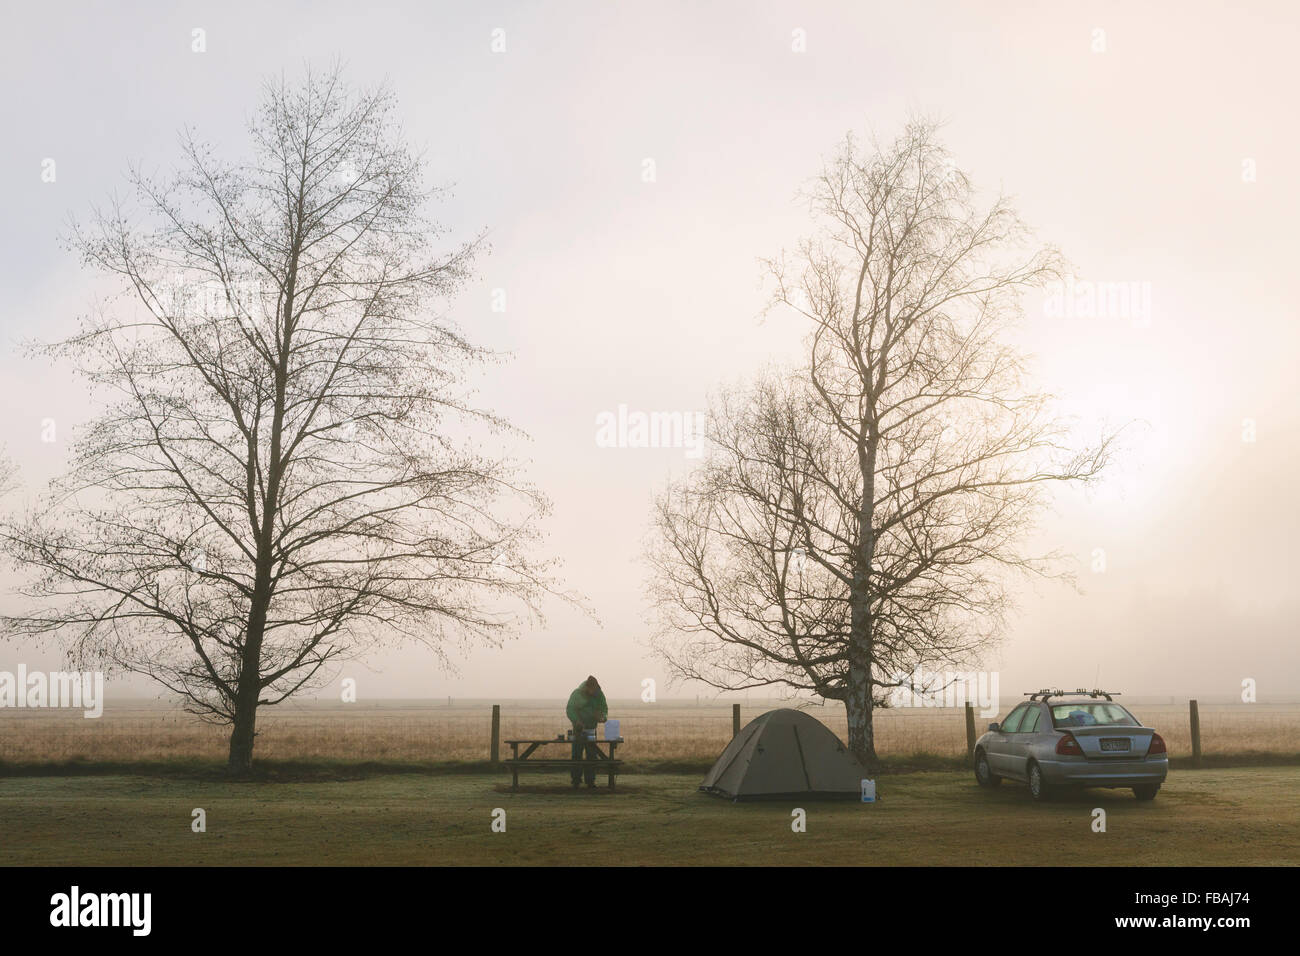 New Zealand, Springfield, Campsite on edge of field with two bare trees, set-up tent, parked car & man standing - Stock Image